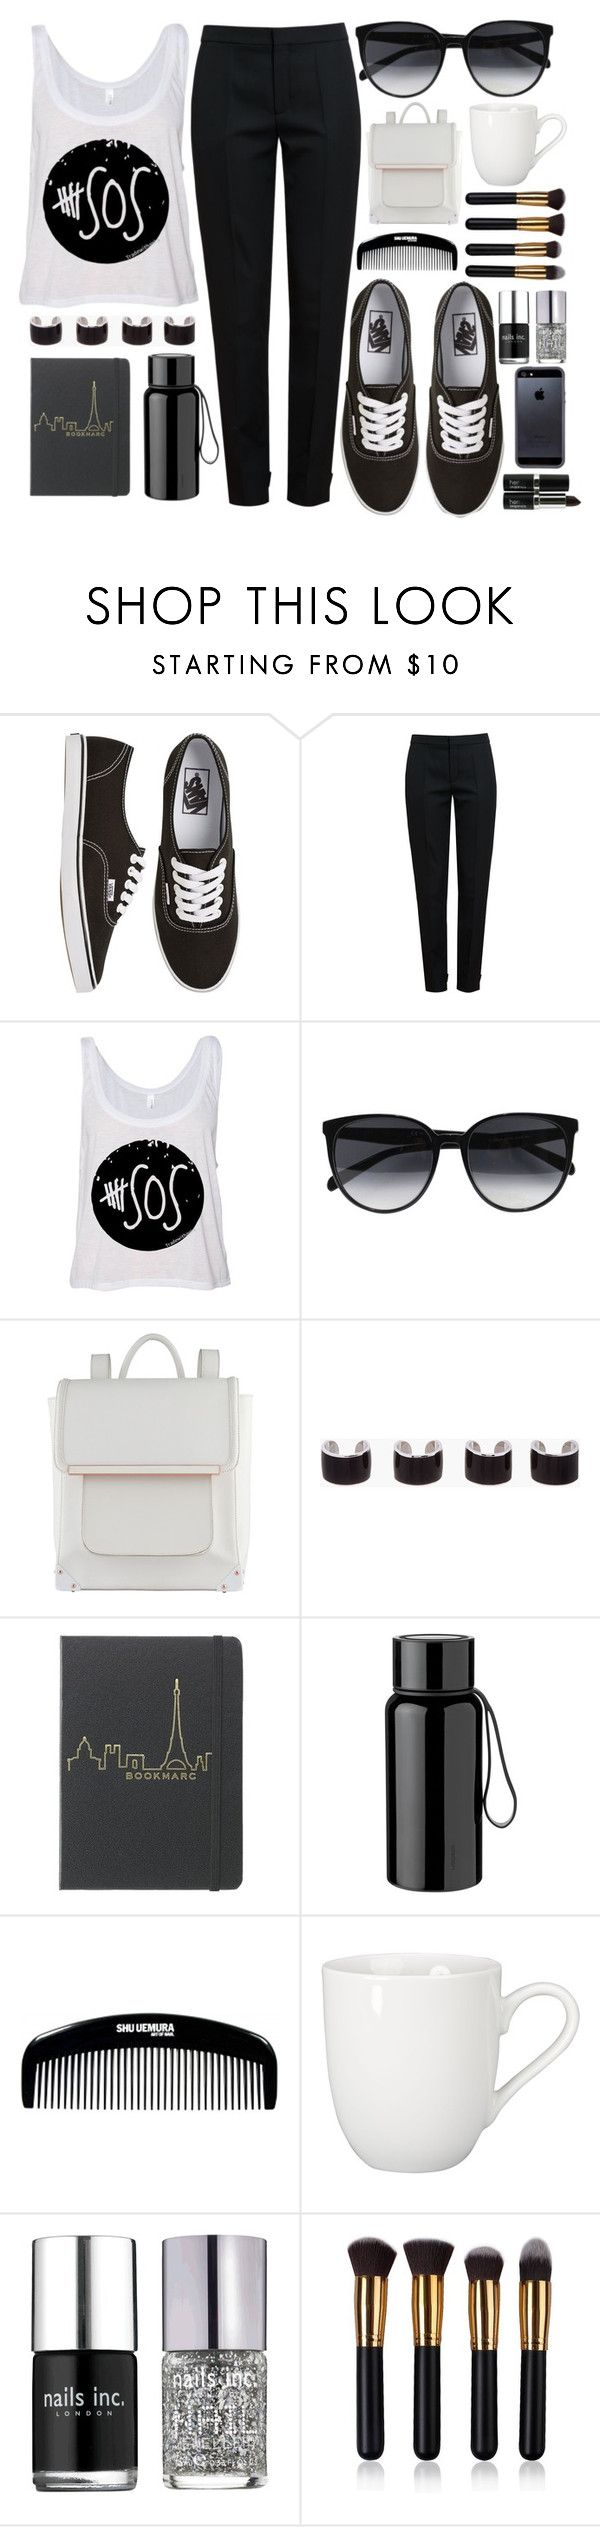 """#5SOS"" by onedeetwins ❤ liked on Polyvore featuring Vans, Chloé, CÉLINE, ALDO, Maison Margiela, Stelton, BIA Cordon Bleu, Nails Inc. and Tavik Swimwear"